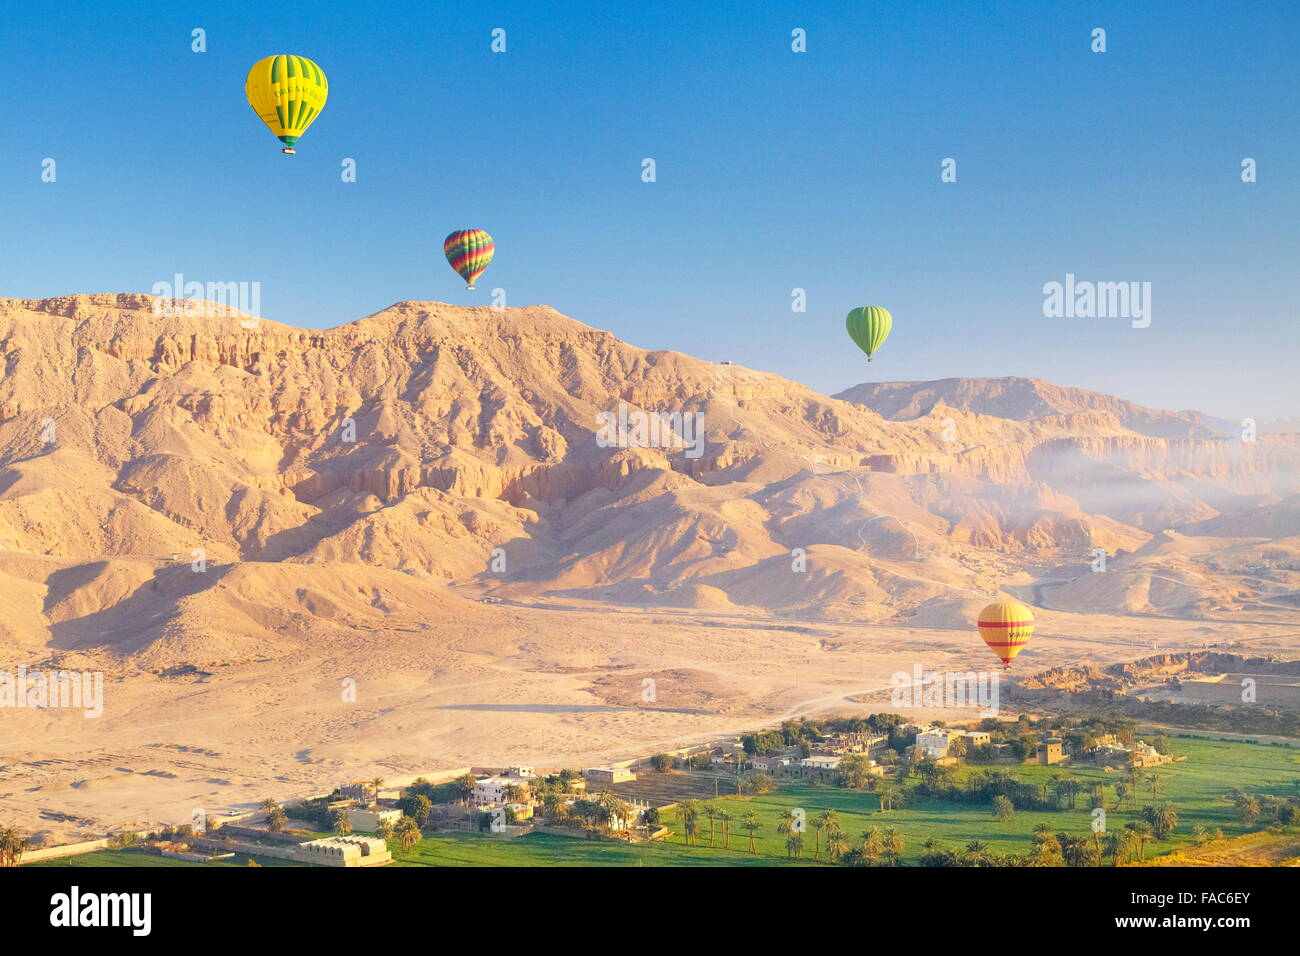 Egypt - balloon flights over the west bank of the Nile, landscape of mountains and green valley - Stock Image